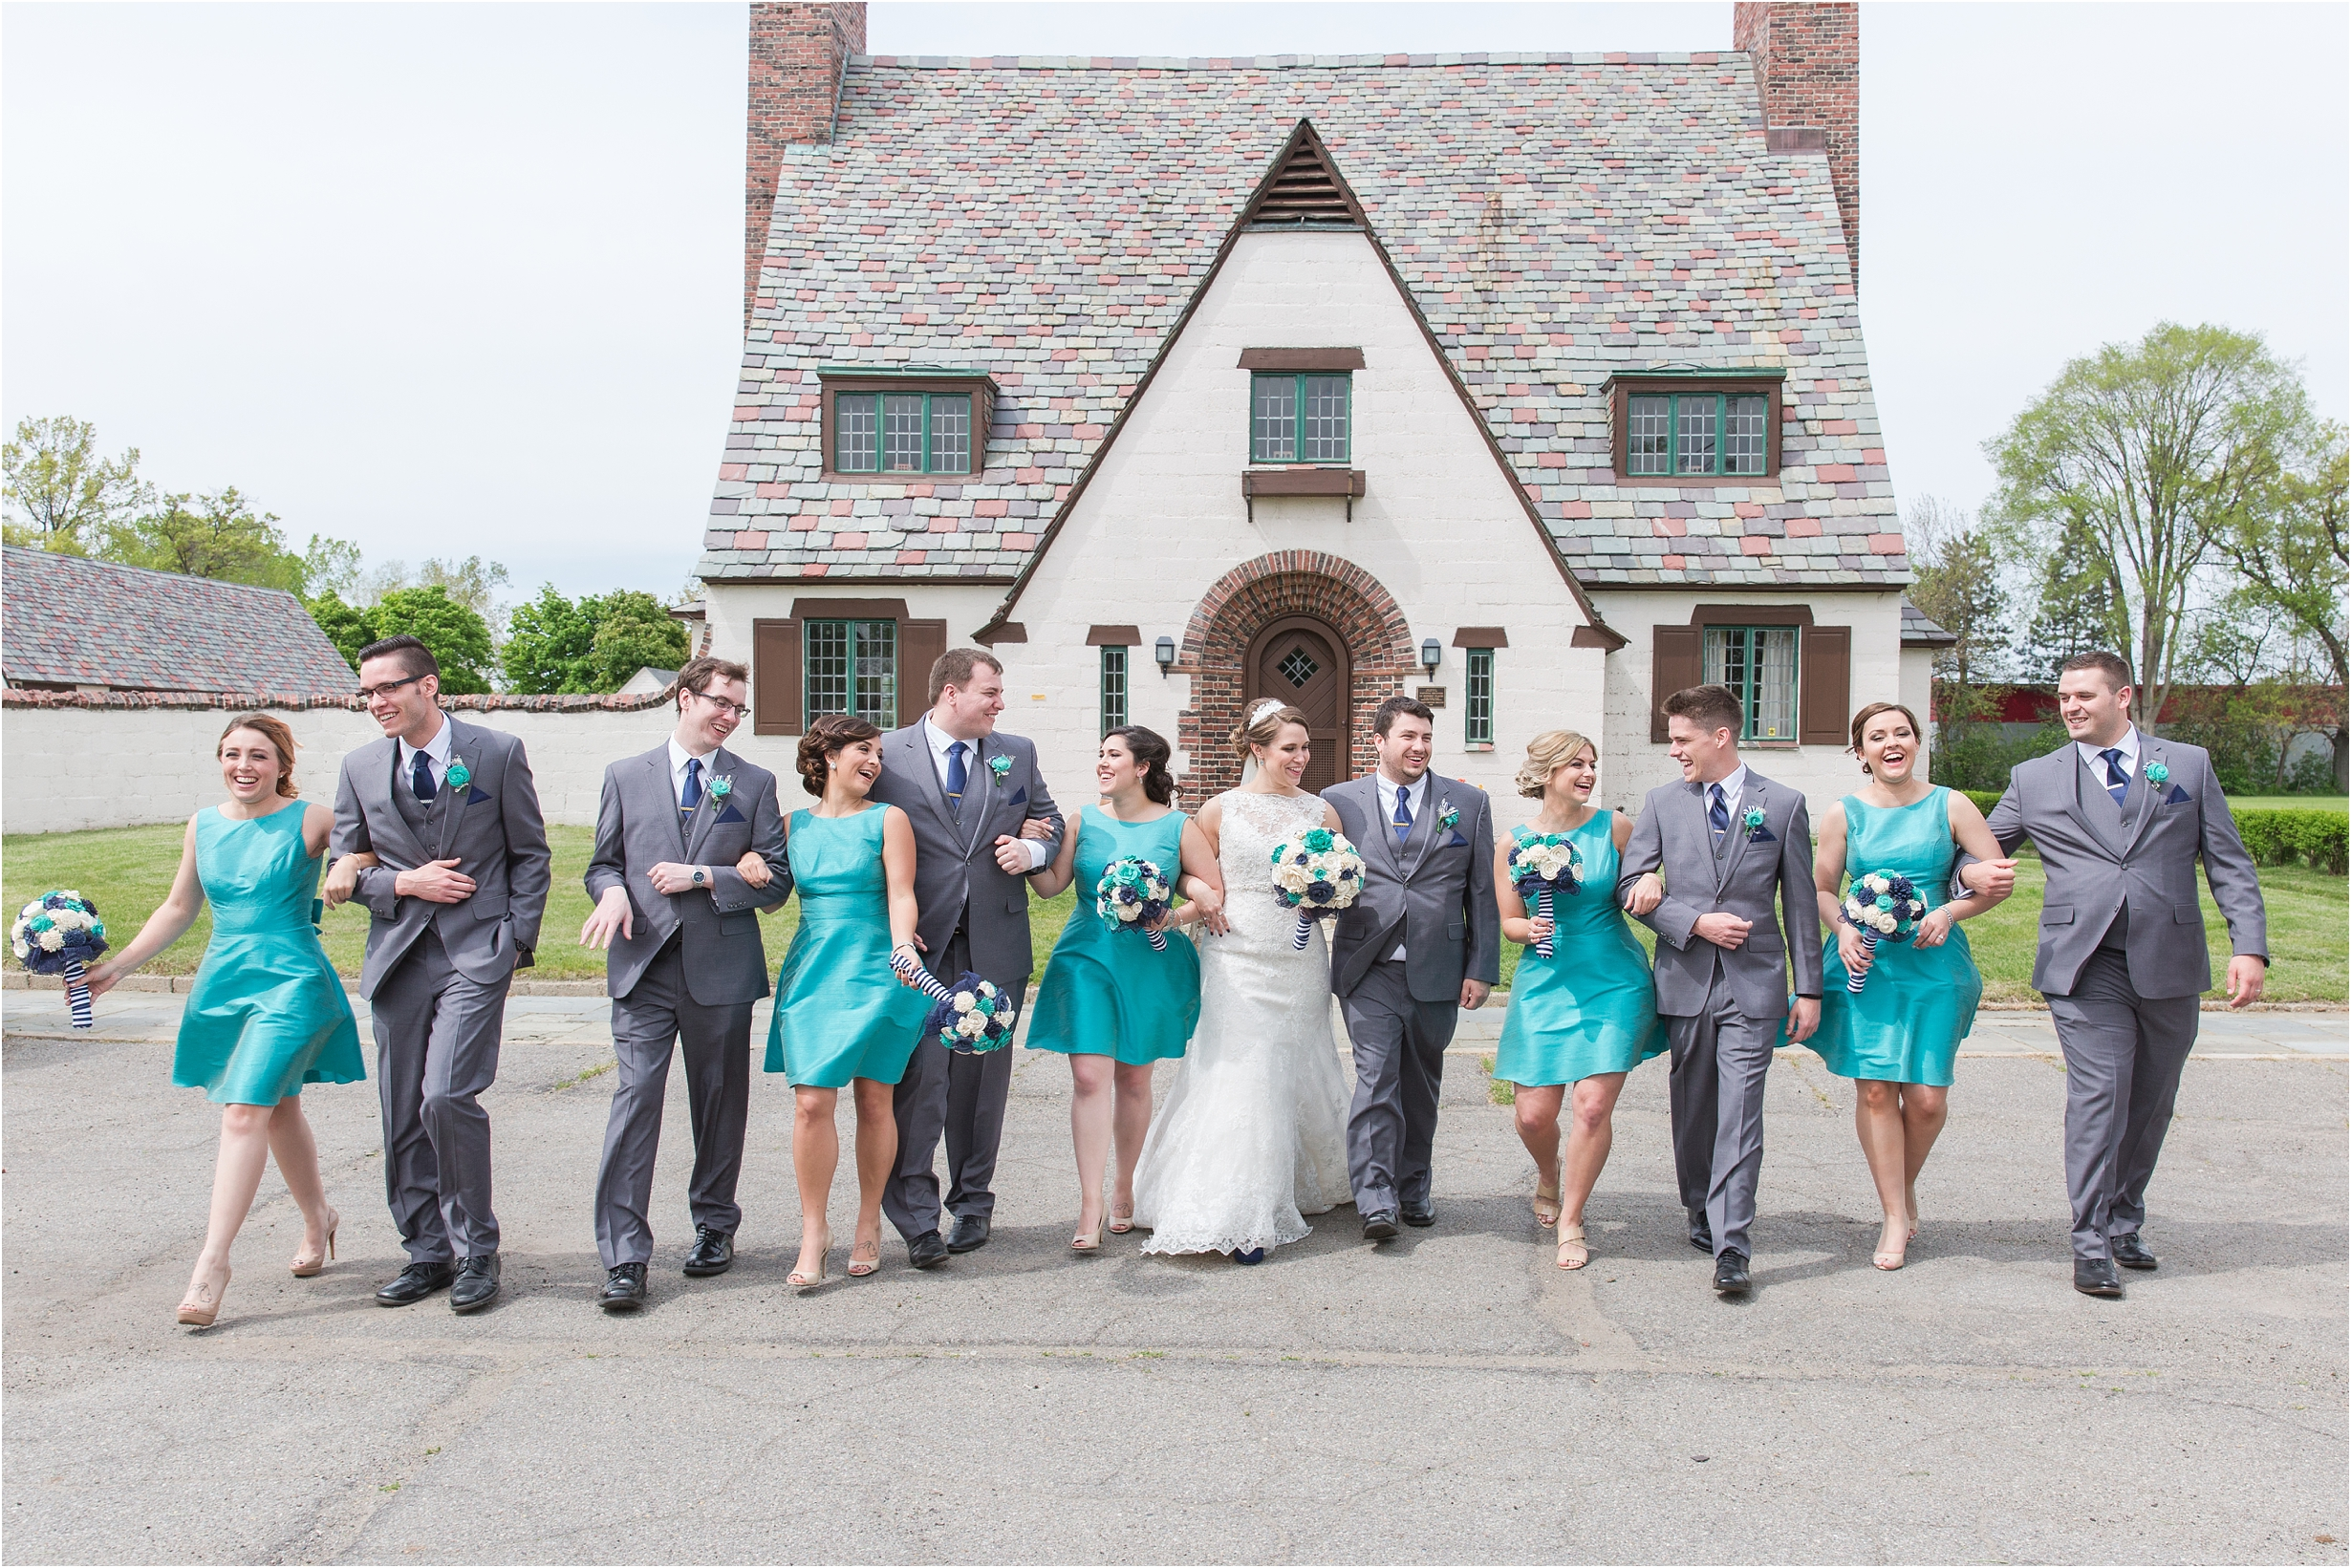 romantic-timeless-candid-wedding-photos-at-the-packard-proving-grounds-by-courtney-carolyn-photography_0005.jpg